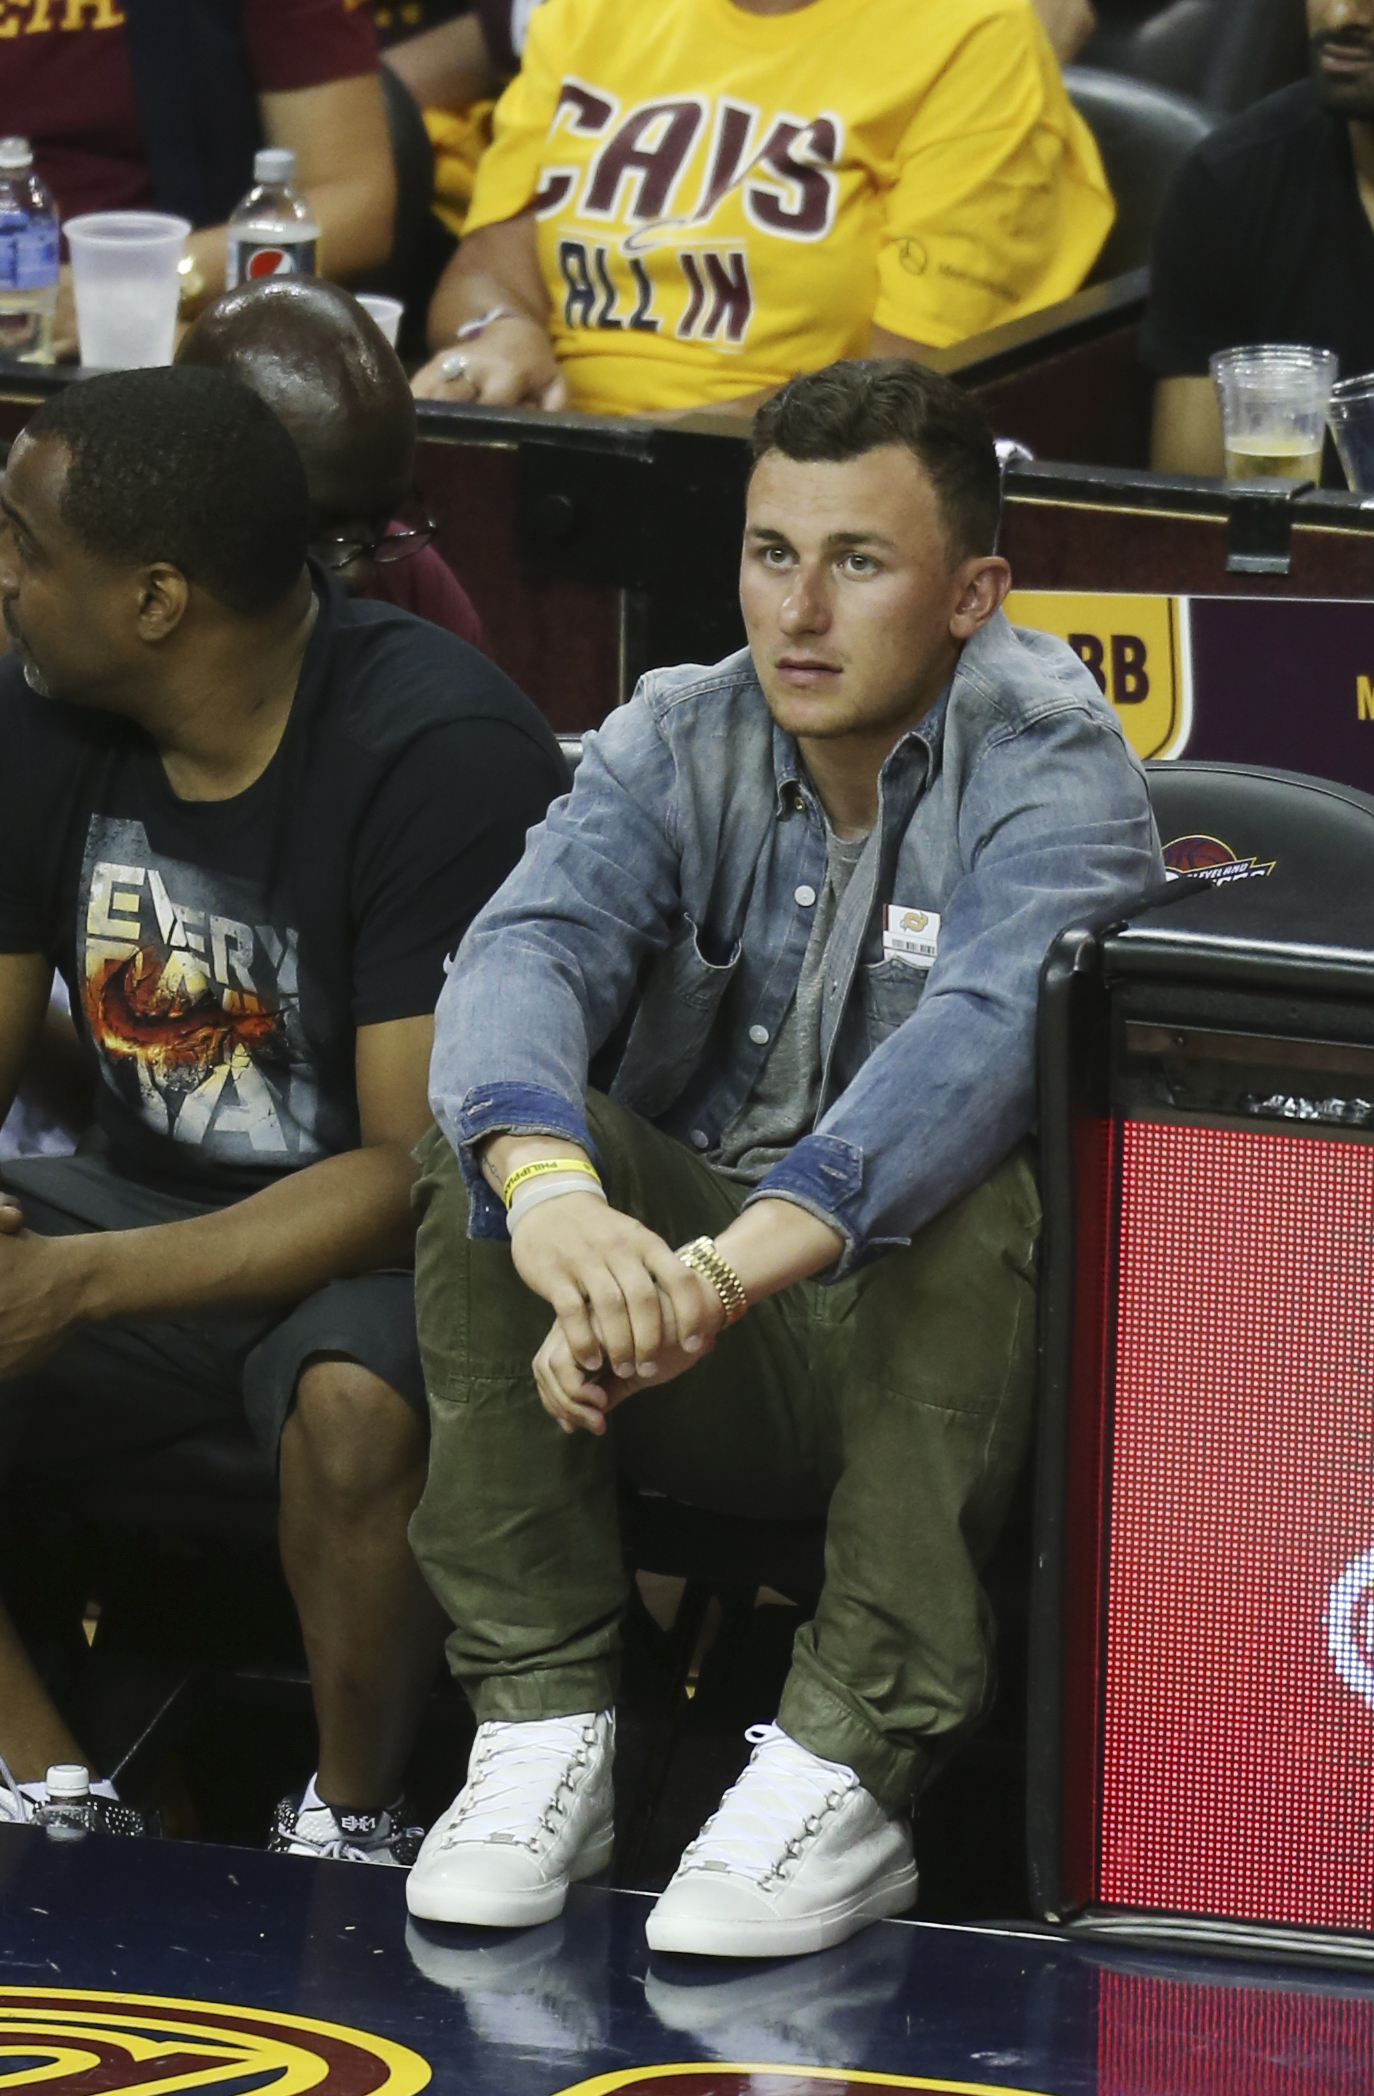 Cleveland Browns quarterback Johnny Manziel watches during the second half in Game 3 of the Eastern Conference finals of the NBA basketball playoffs between the Atlanta Hawks and Cleveland Cavaliers Sunday, May 24, 2015, in Cleveland. (AP Photo/Ron Schwan